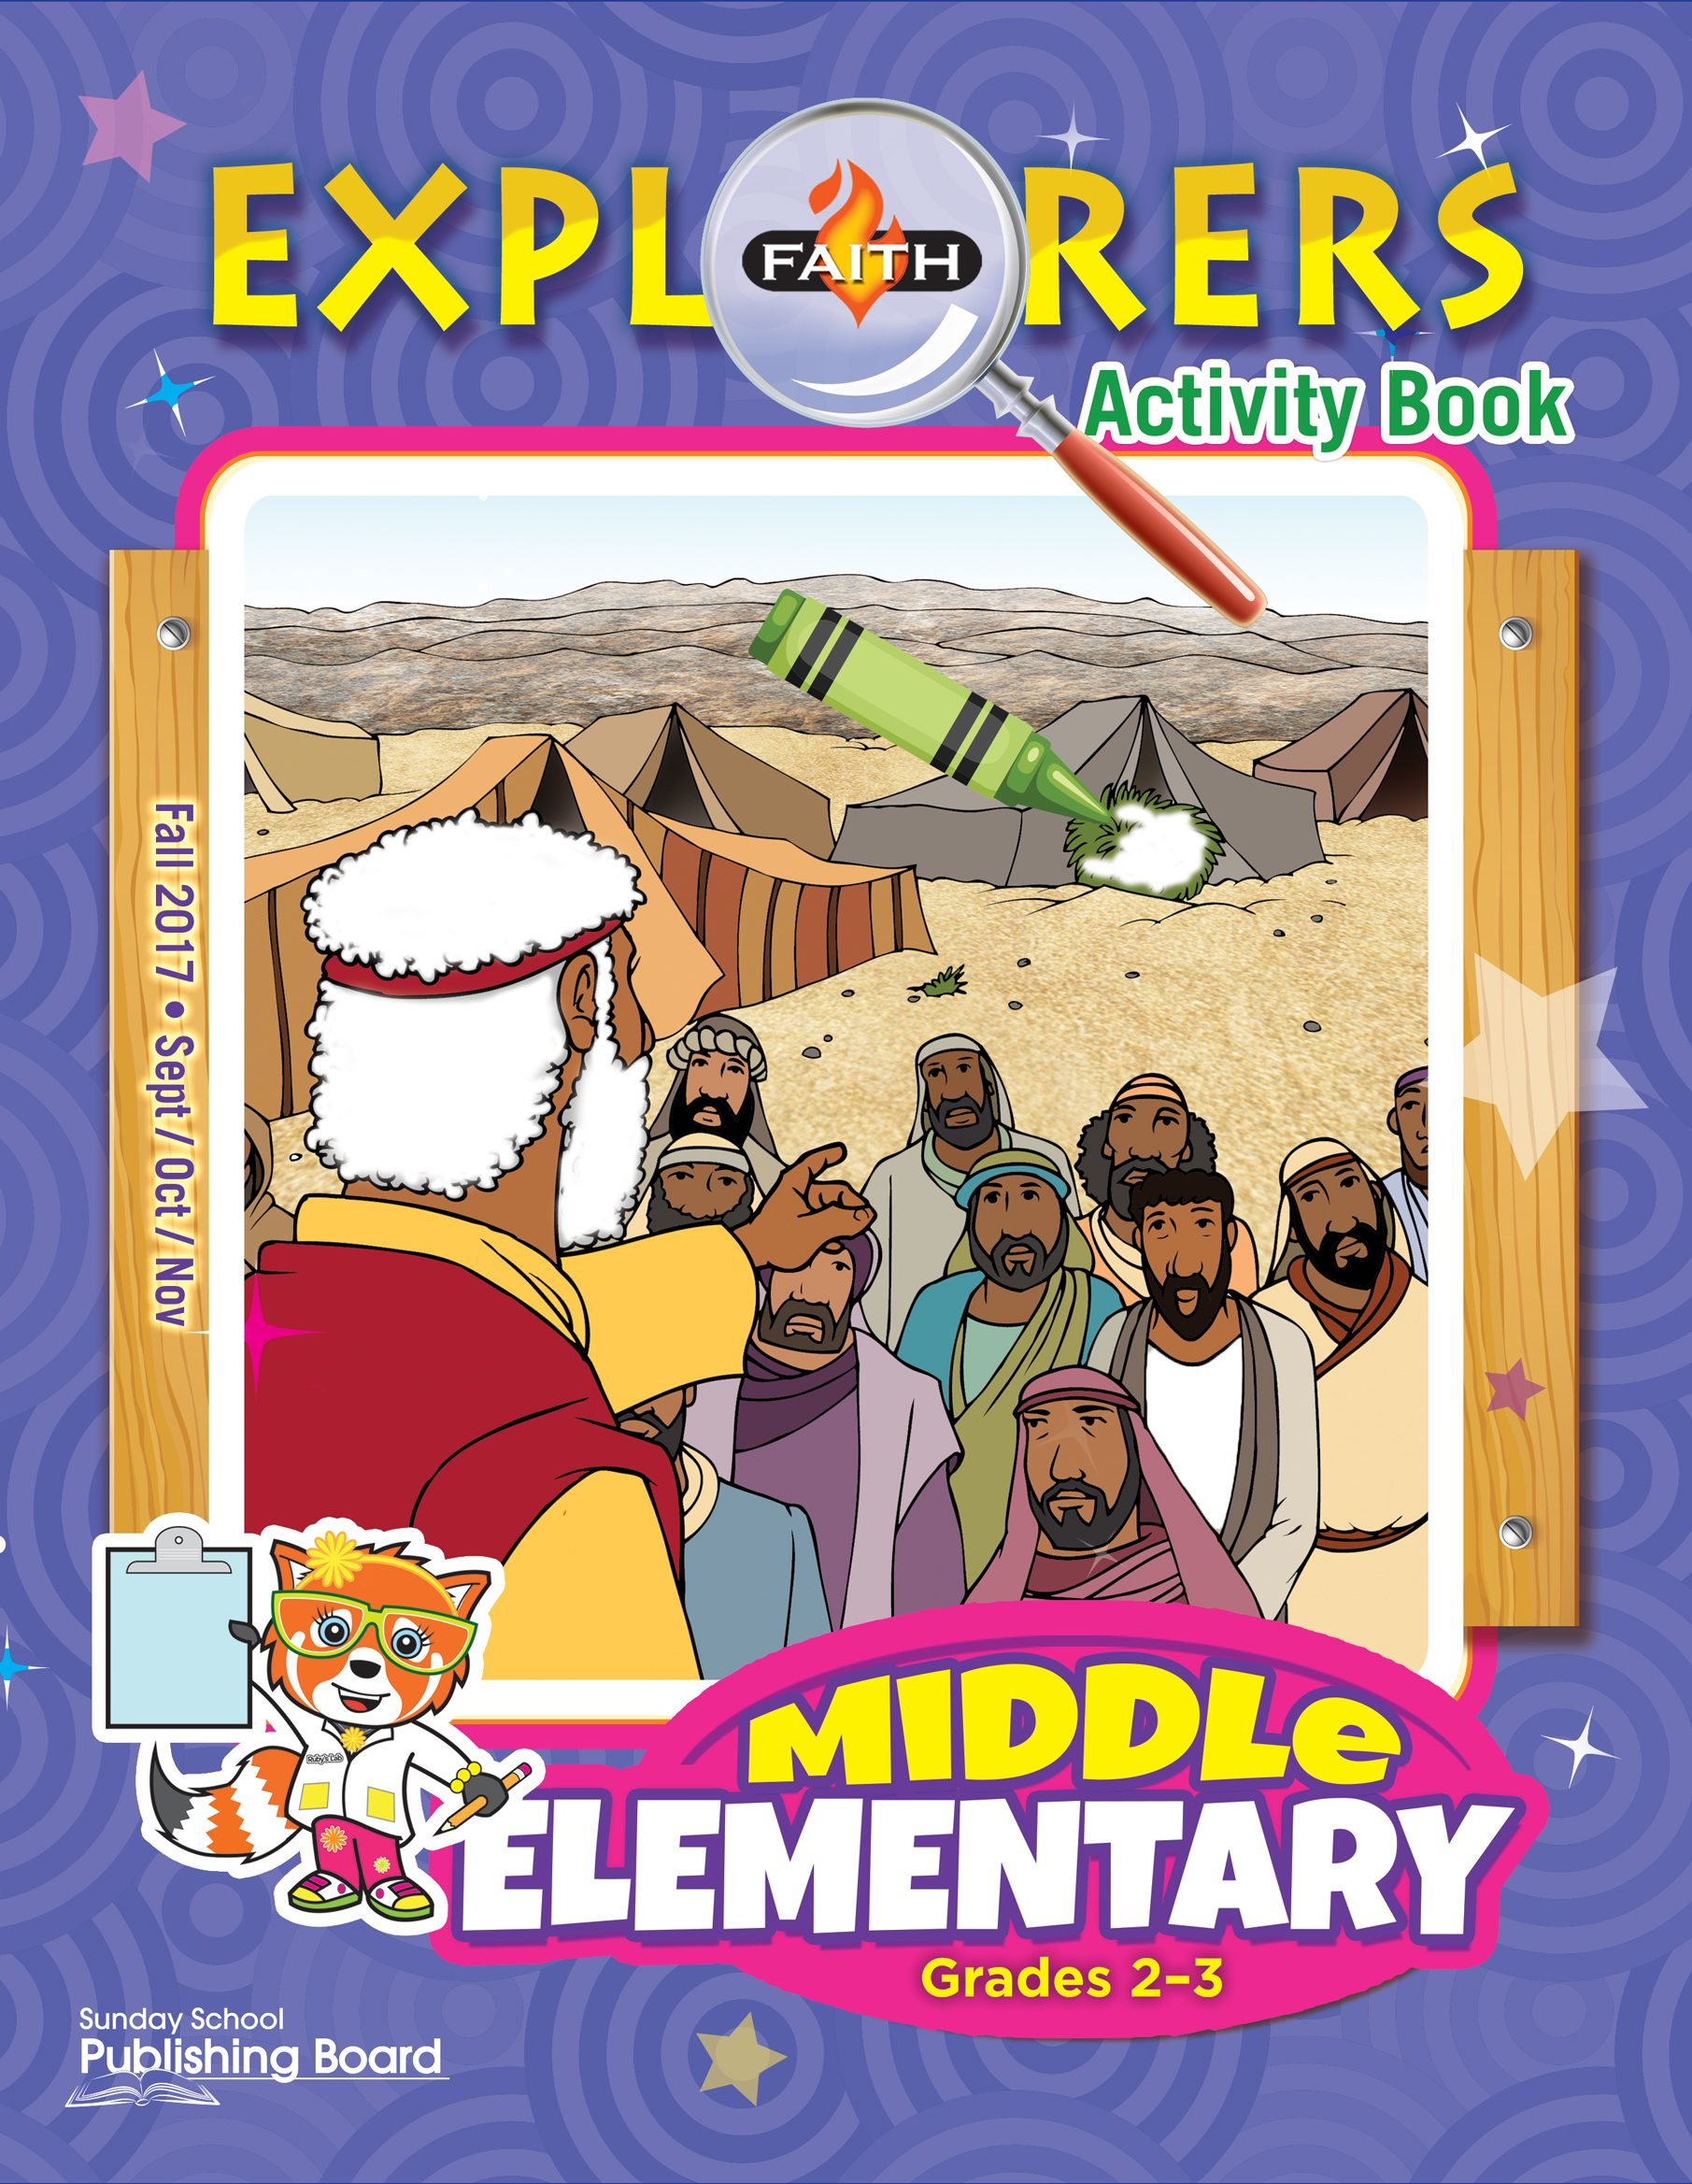 Faith Explorers Activity Book, Middle Elementary for Grades 2-3 (Fall 2017)-Digital Edition